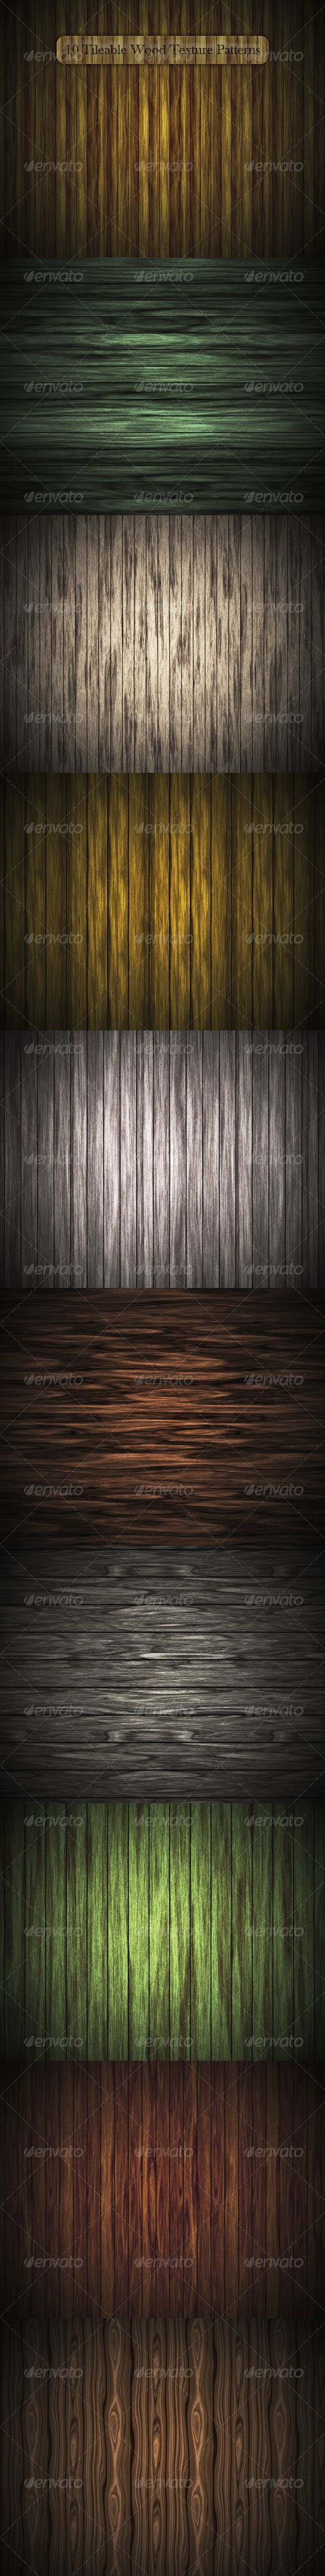 GraphicRiver 10 Tileable Wood Texture Patterns 105097